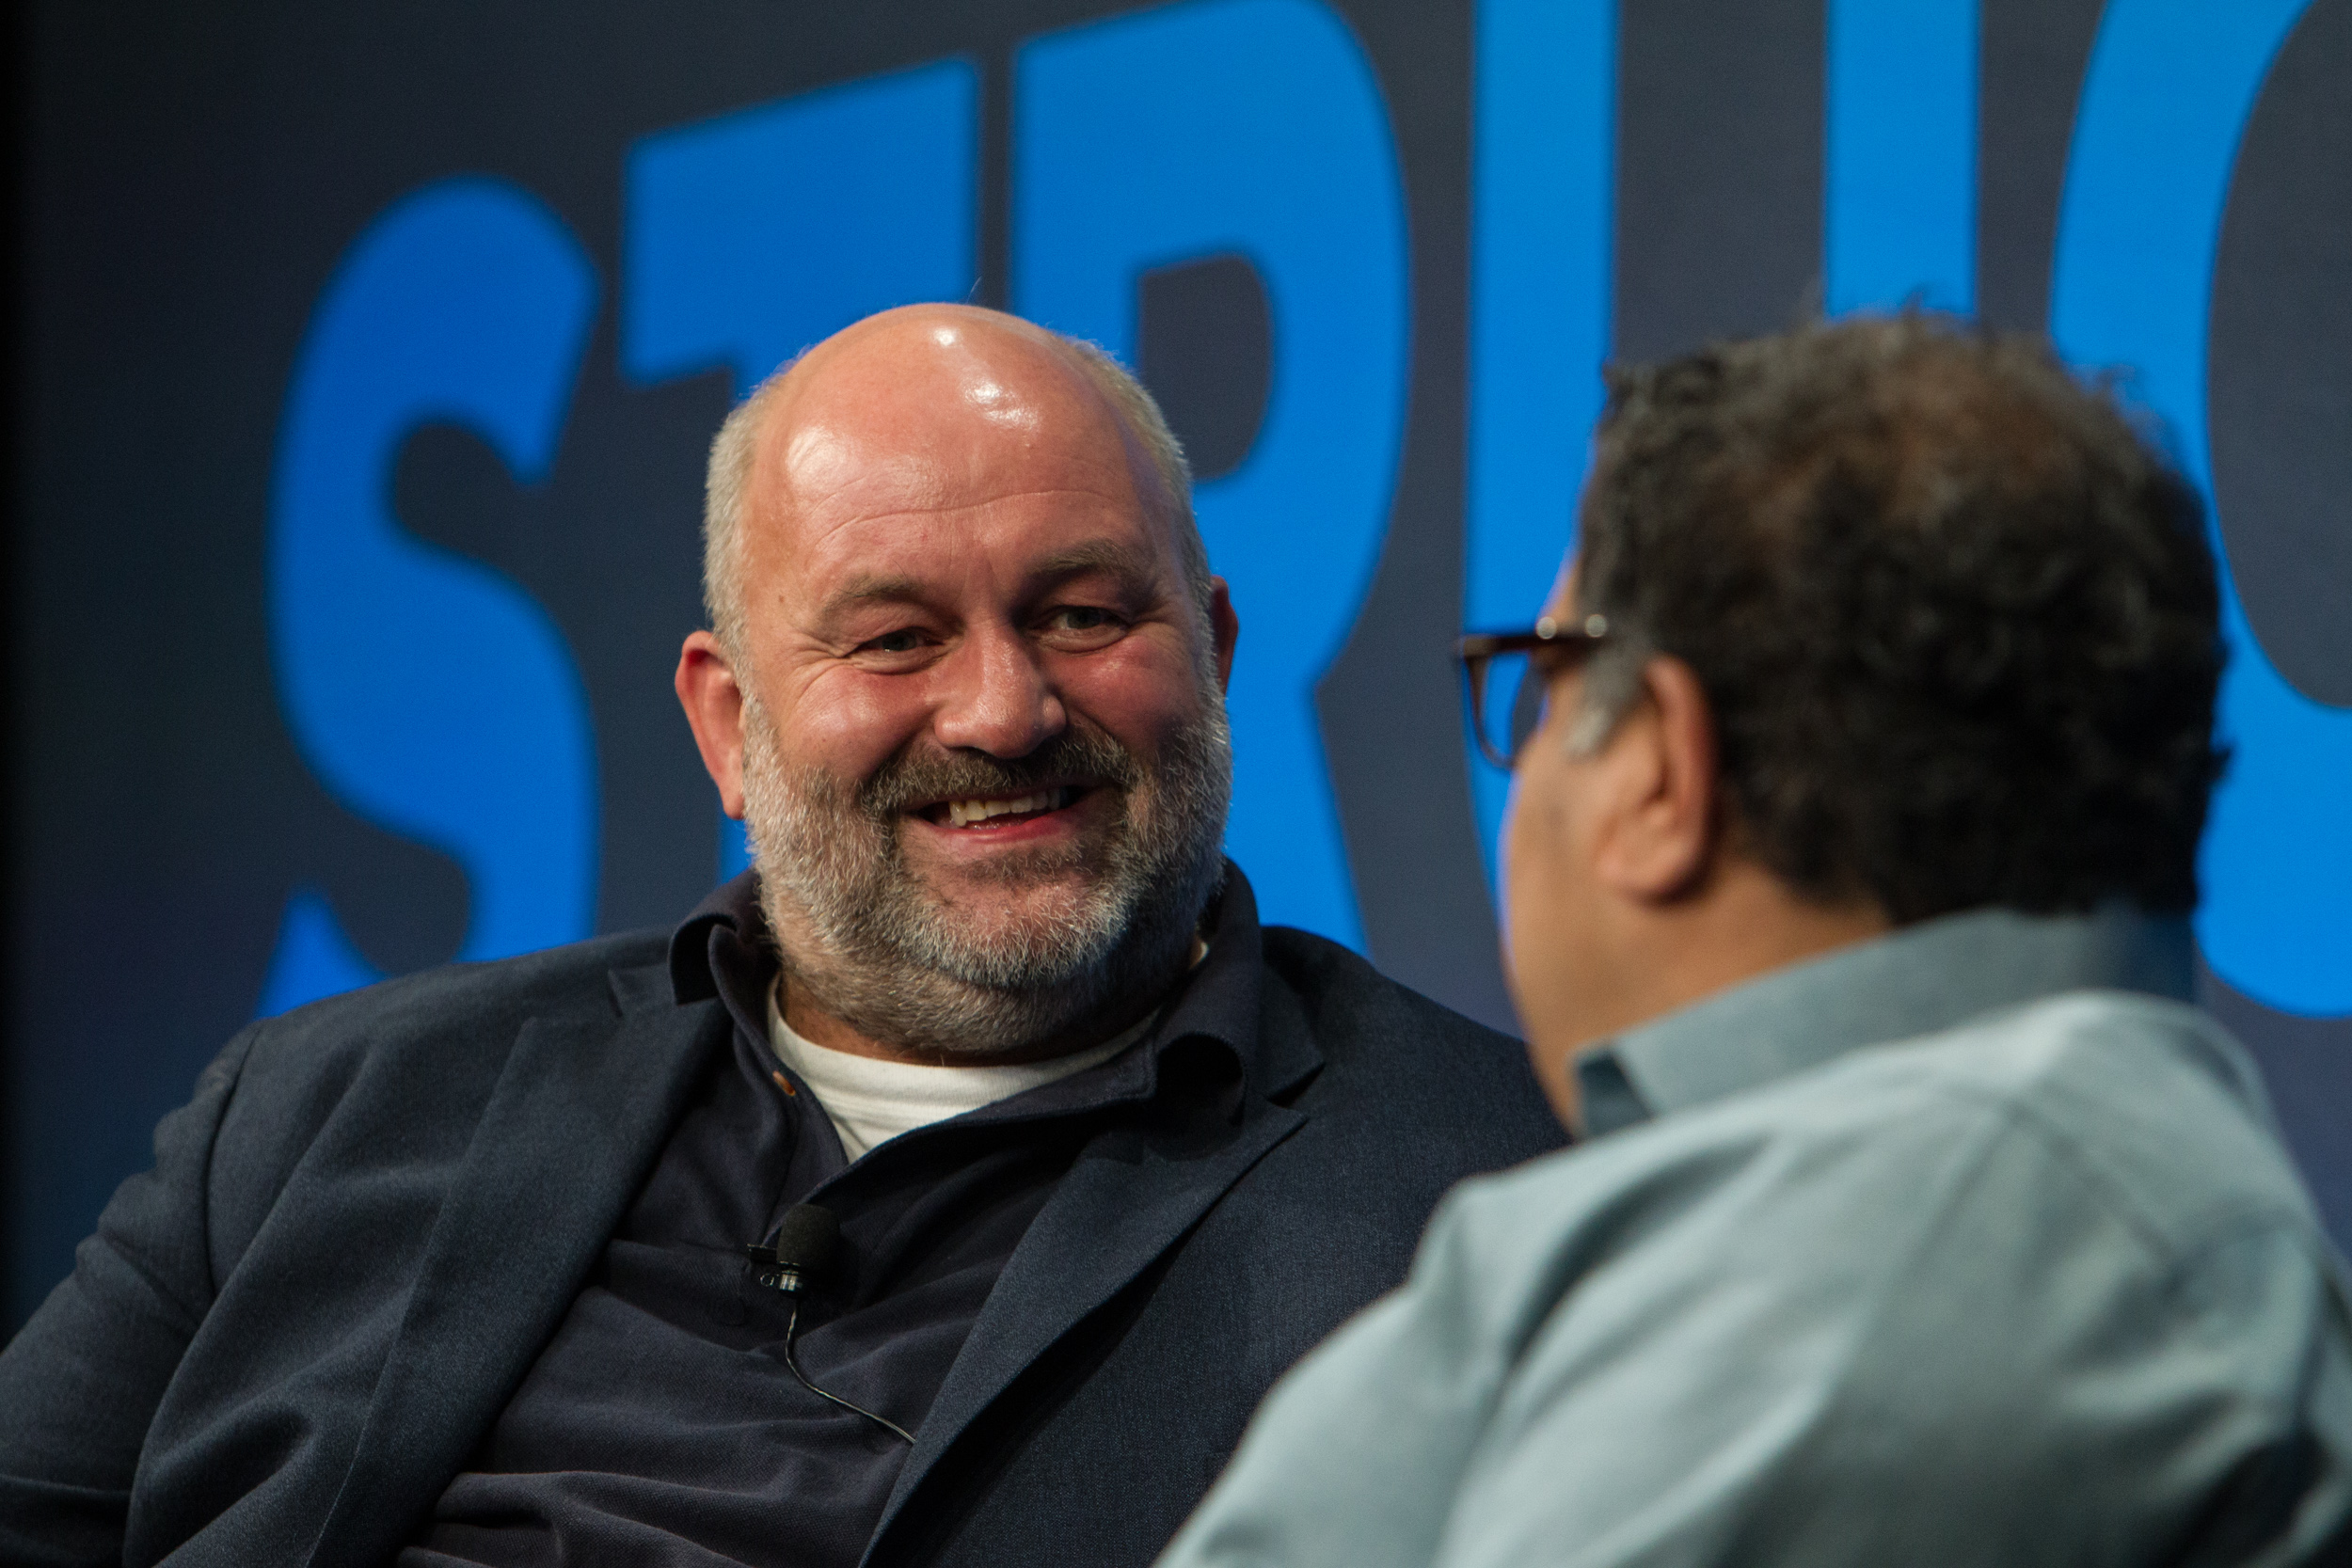 Amazon CTO Werner Vogels (left) at Structure 2014. (c) Jakub Mosur